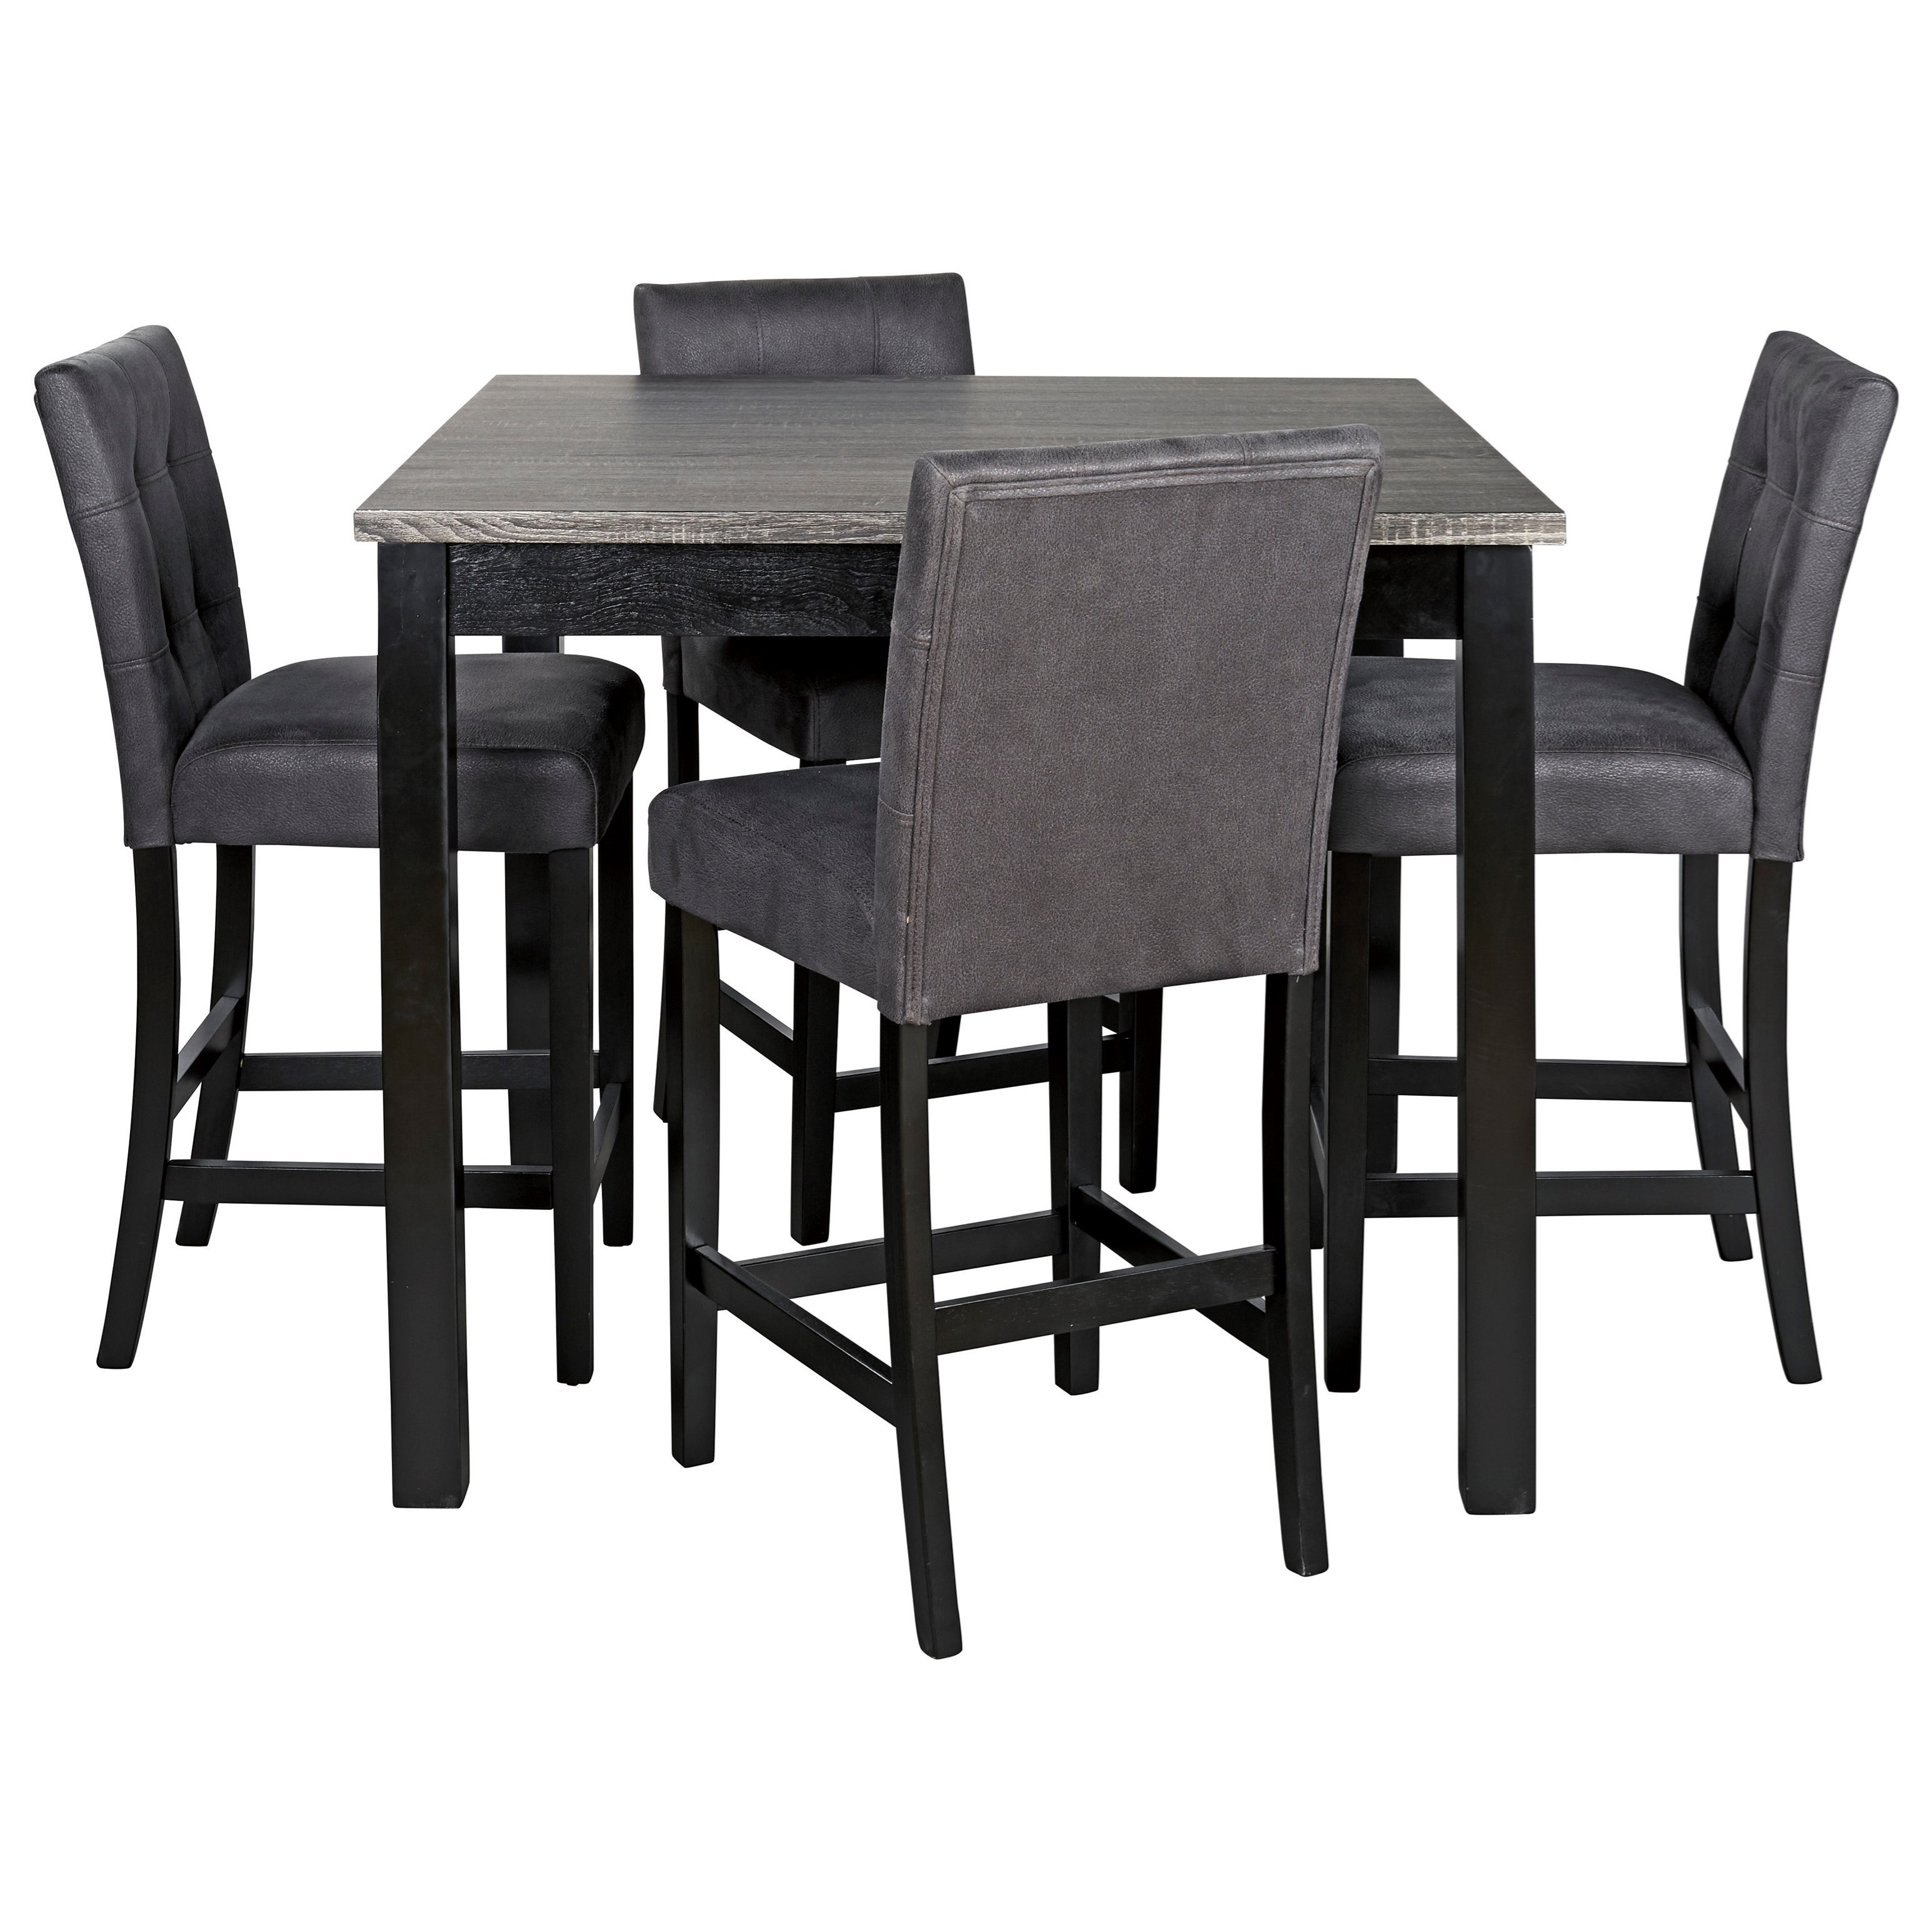 Picture of: Garvine 5 Piece Square Counter Height Dining Room Table Set With Bar Stools Sadler S Home Furnishings Pub Table And Stool Sets